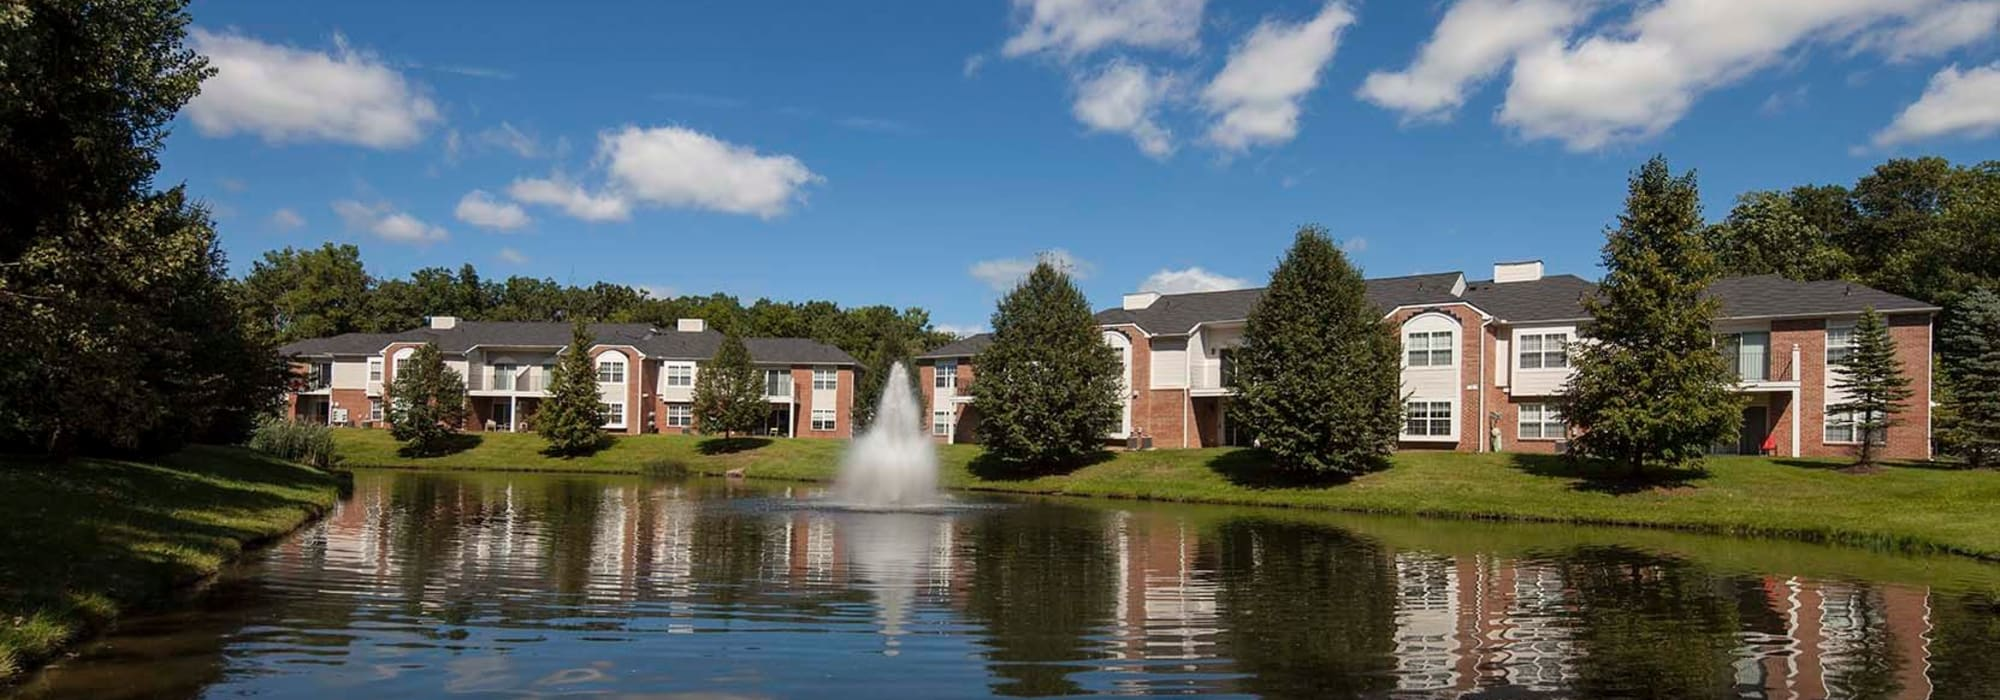 Apartments in Commerce Township, MI